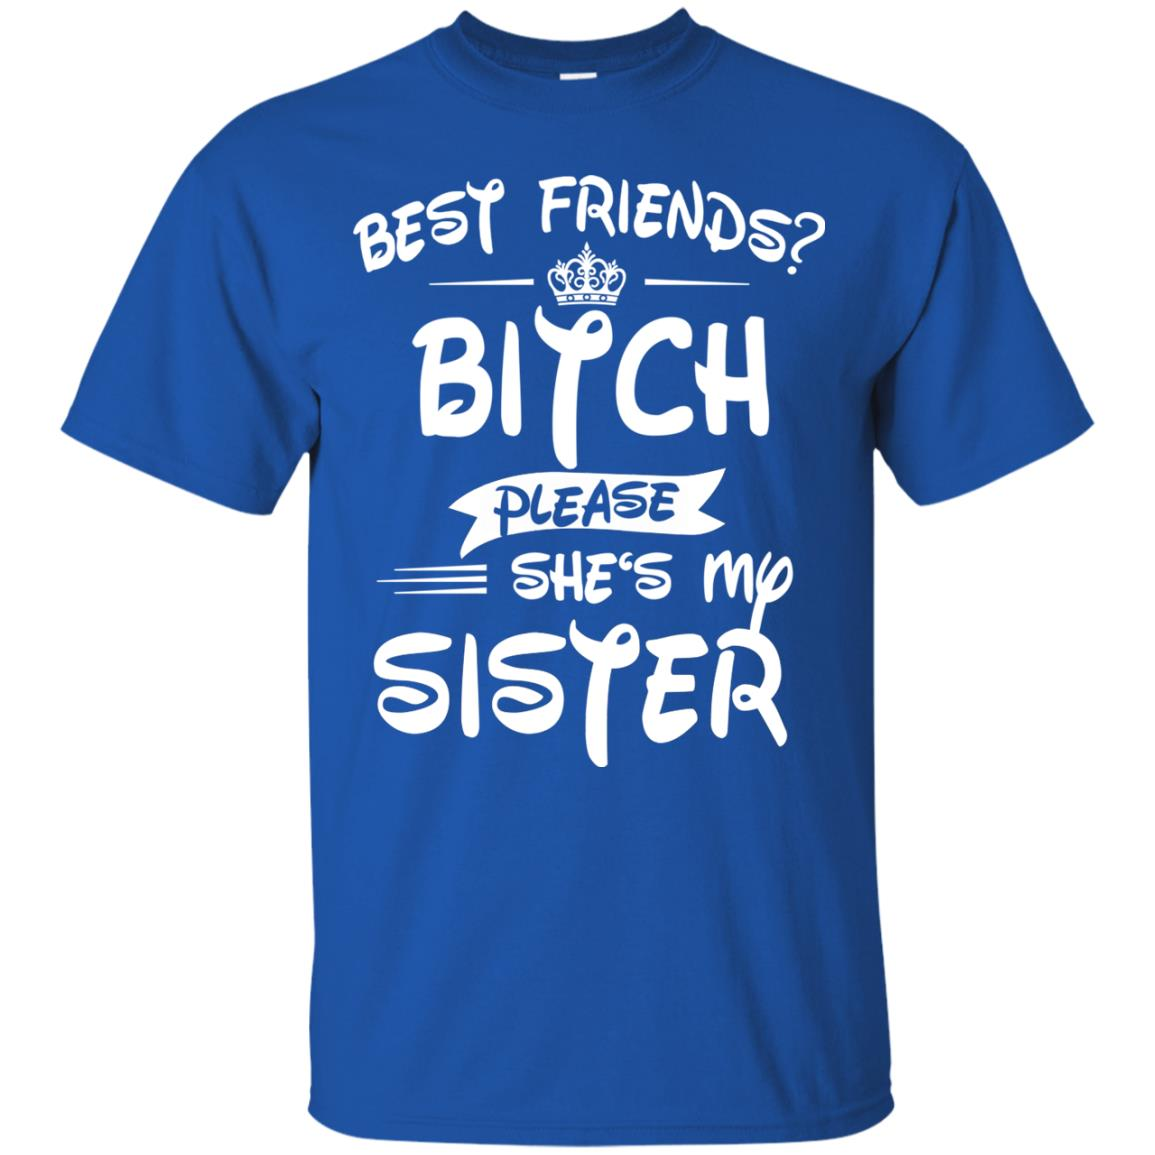 efe174f94a12 Best friends bitch please she's my sister shirt - image 2898 500x500